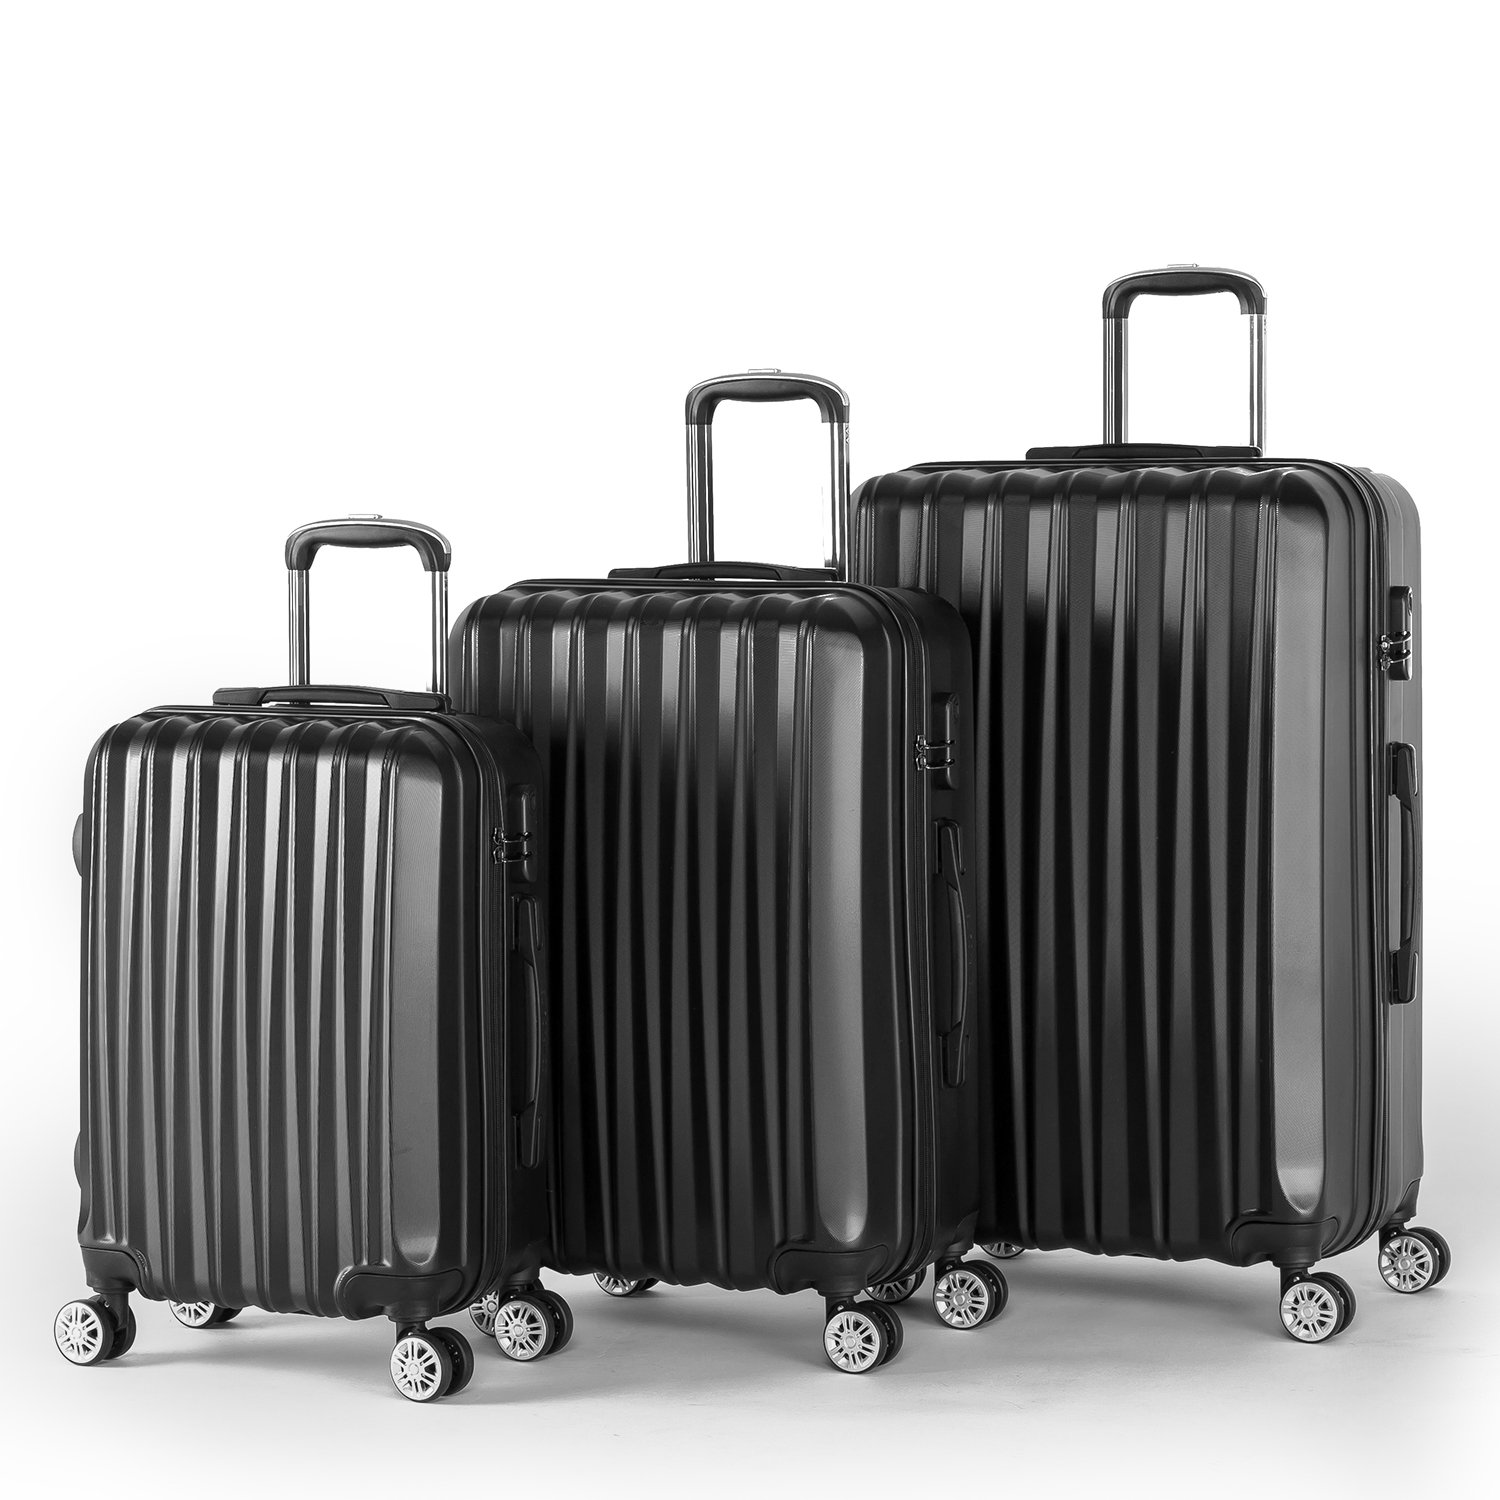 Compaclite Voyager ABS + PC 3 Piece Luggage Set Lightweight Spinner Suitcases, Black